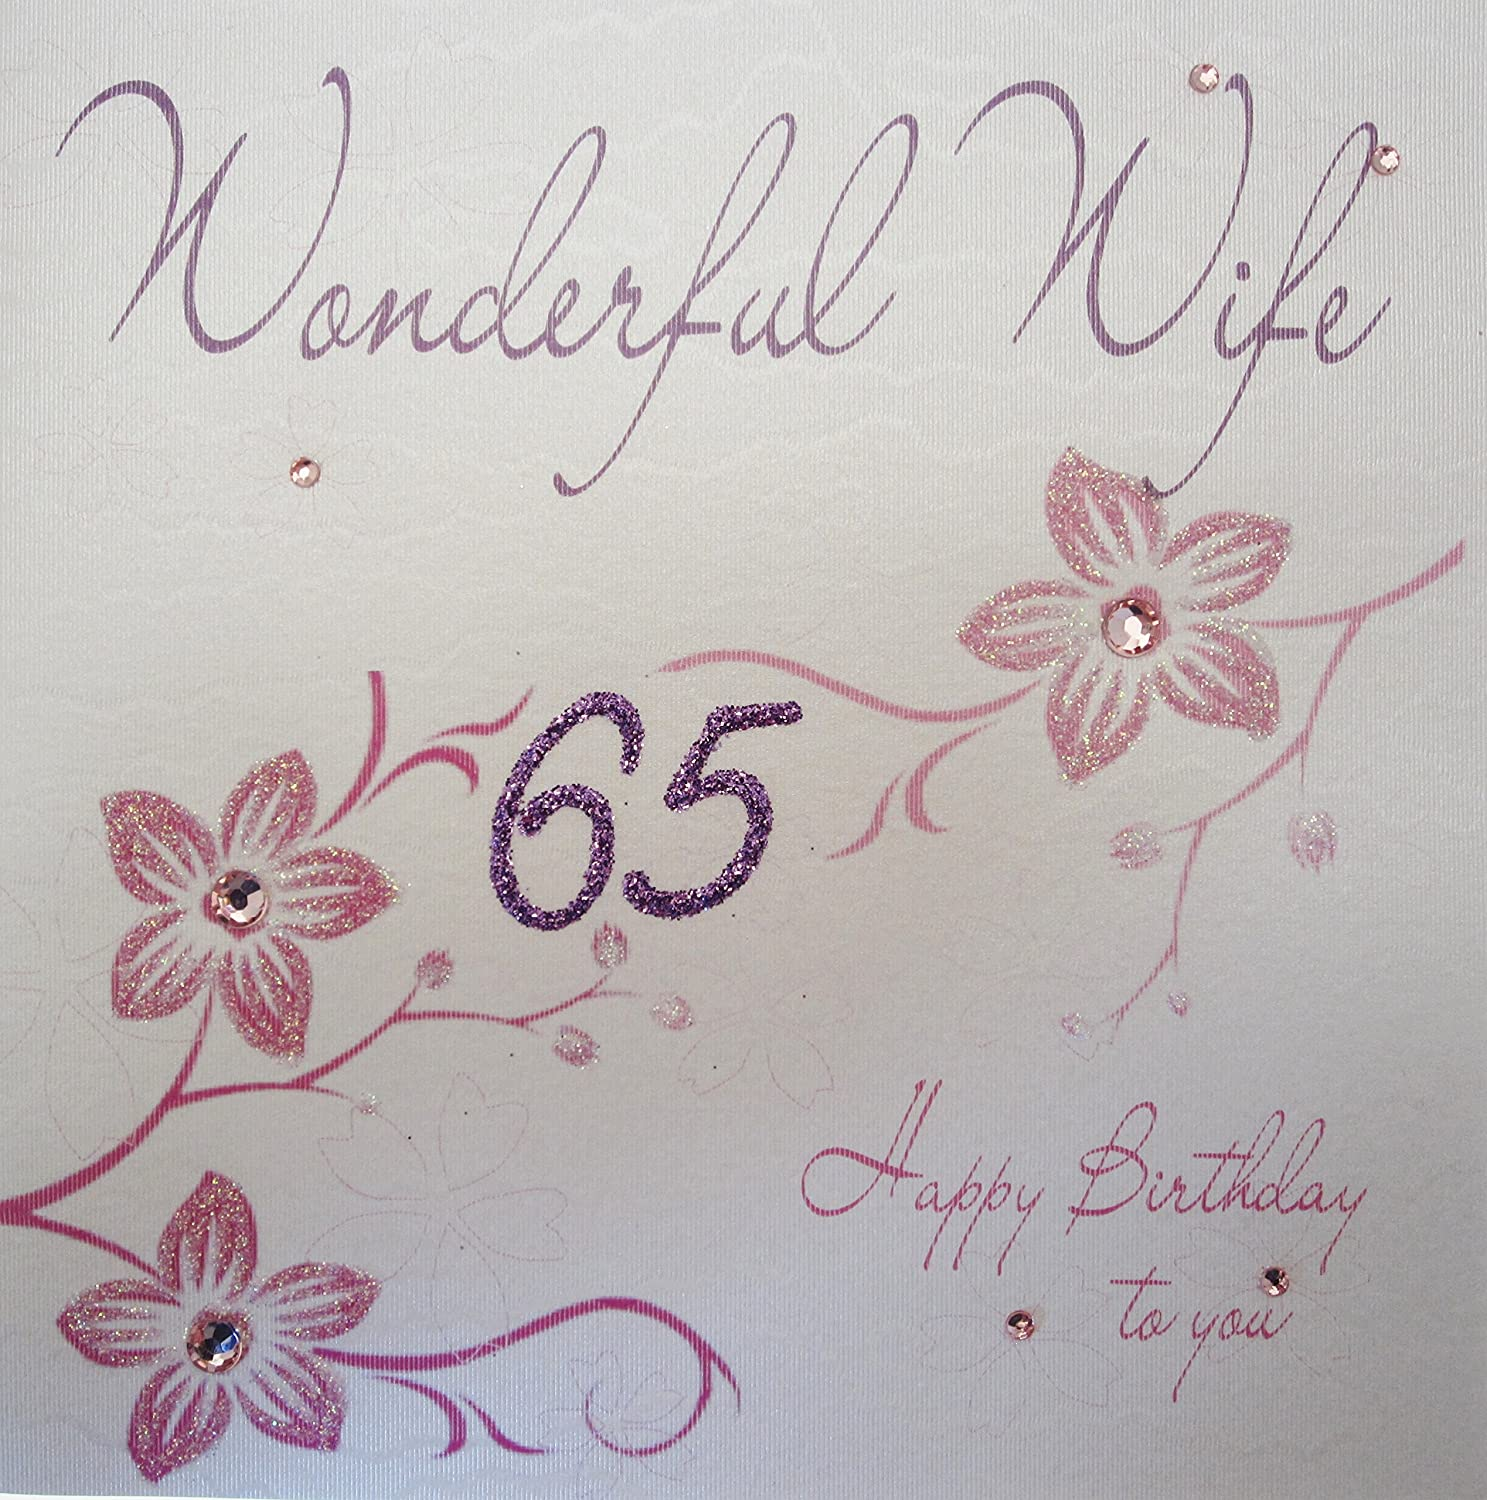 Download 65th birthday card turning 65 happy 65th birthday friend - White Cotton Cards Wb103 65 Flowers Wonderful Wife 65 Happy Birthday To You Handmade 65th Birthday Card White Amazon Co Uk Kitchen Home